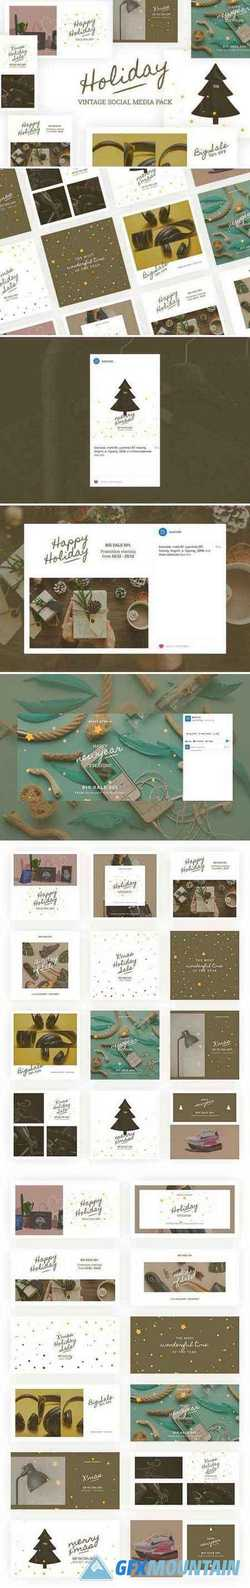 HOLIDAY VINTAGE SOCIAL MEDIA PACK 2137285